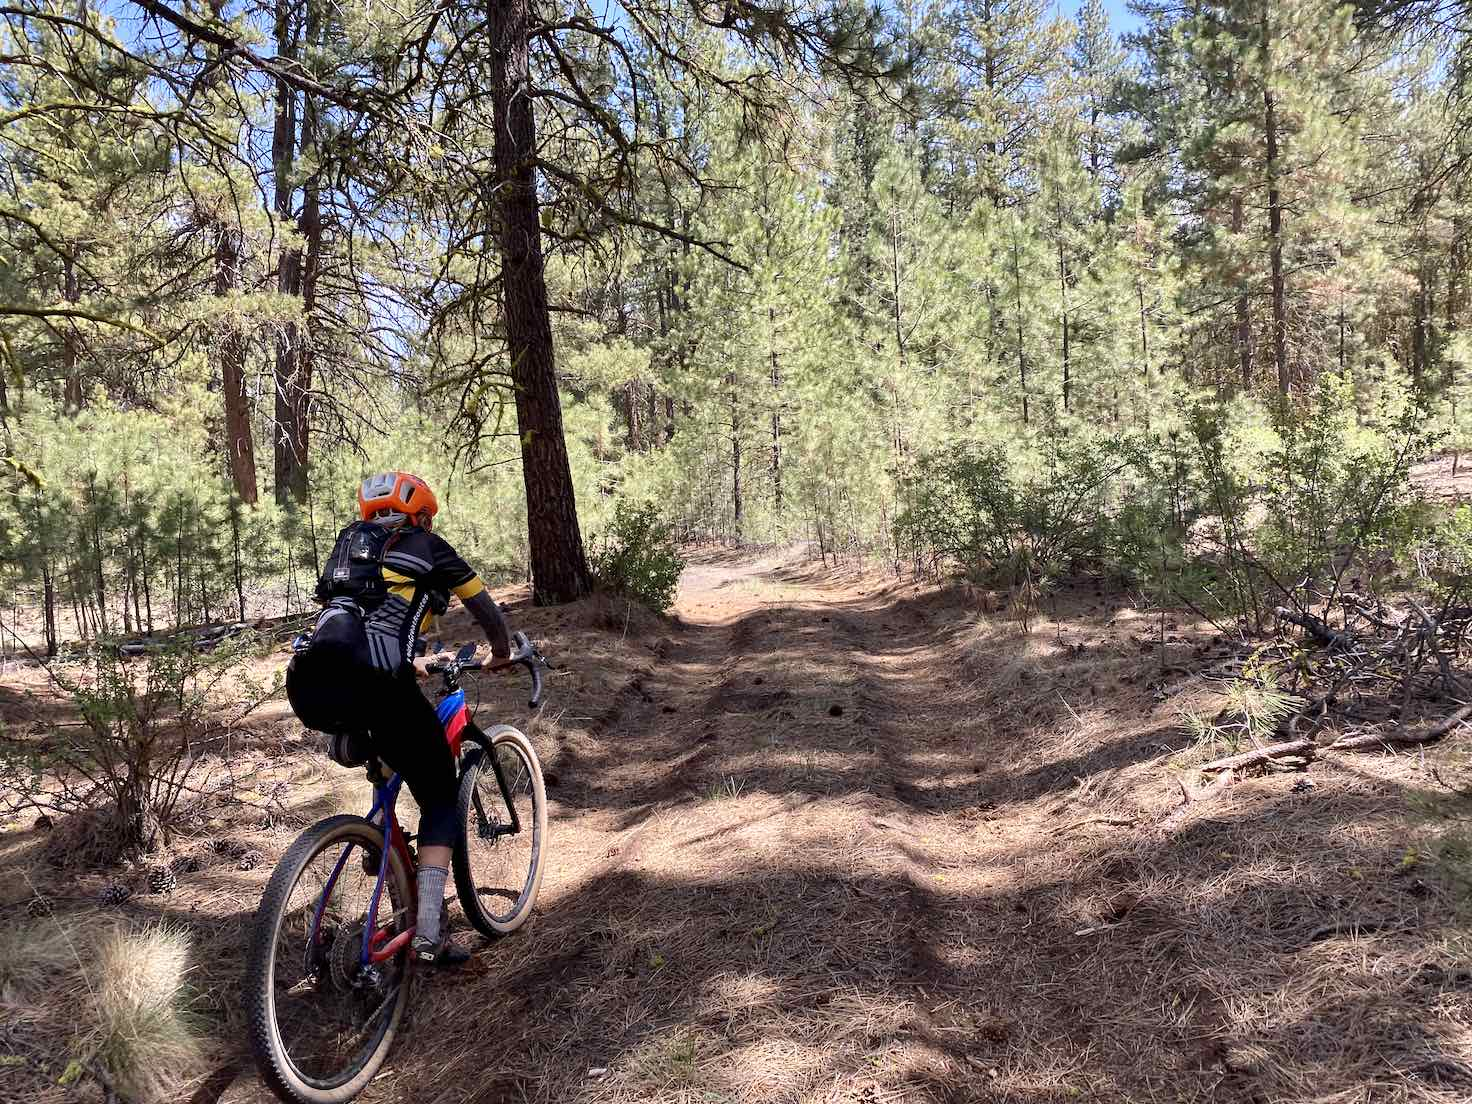 Gravel cyclist on dirt road that is covered in pine needle tuft.